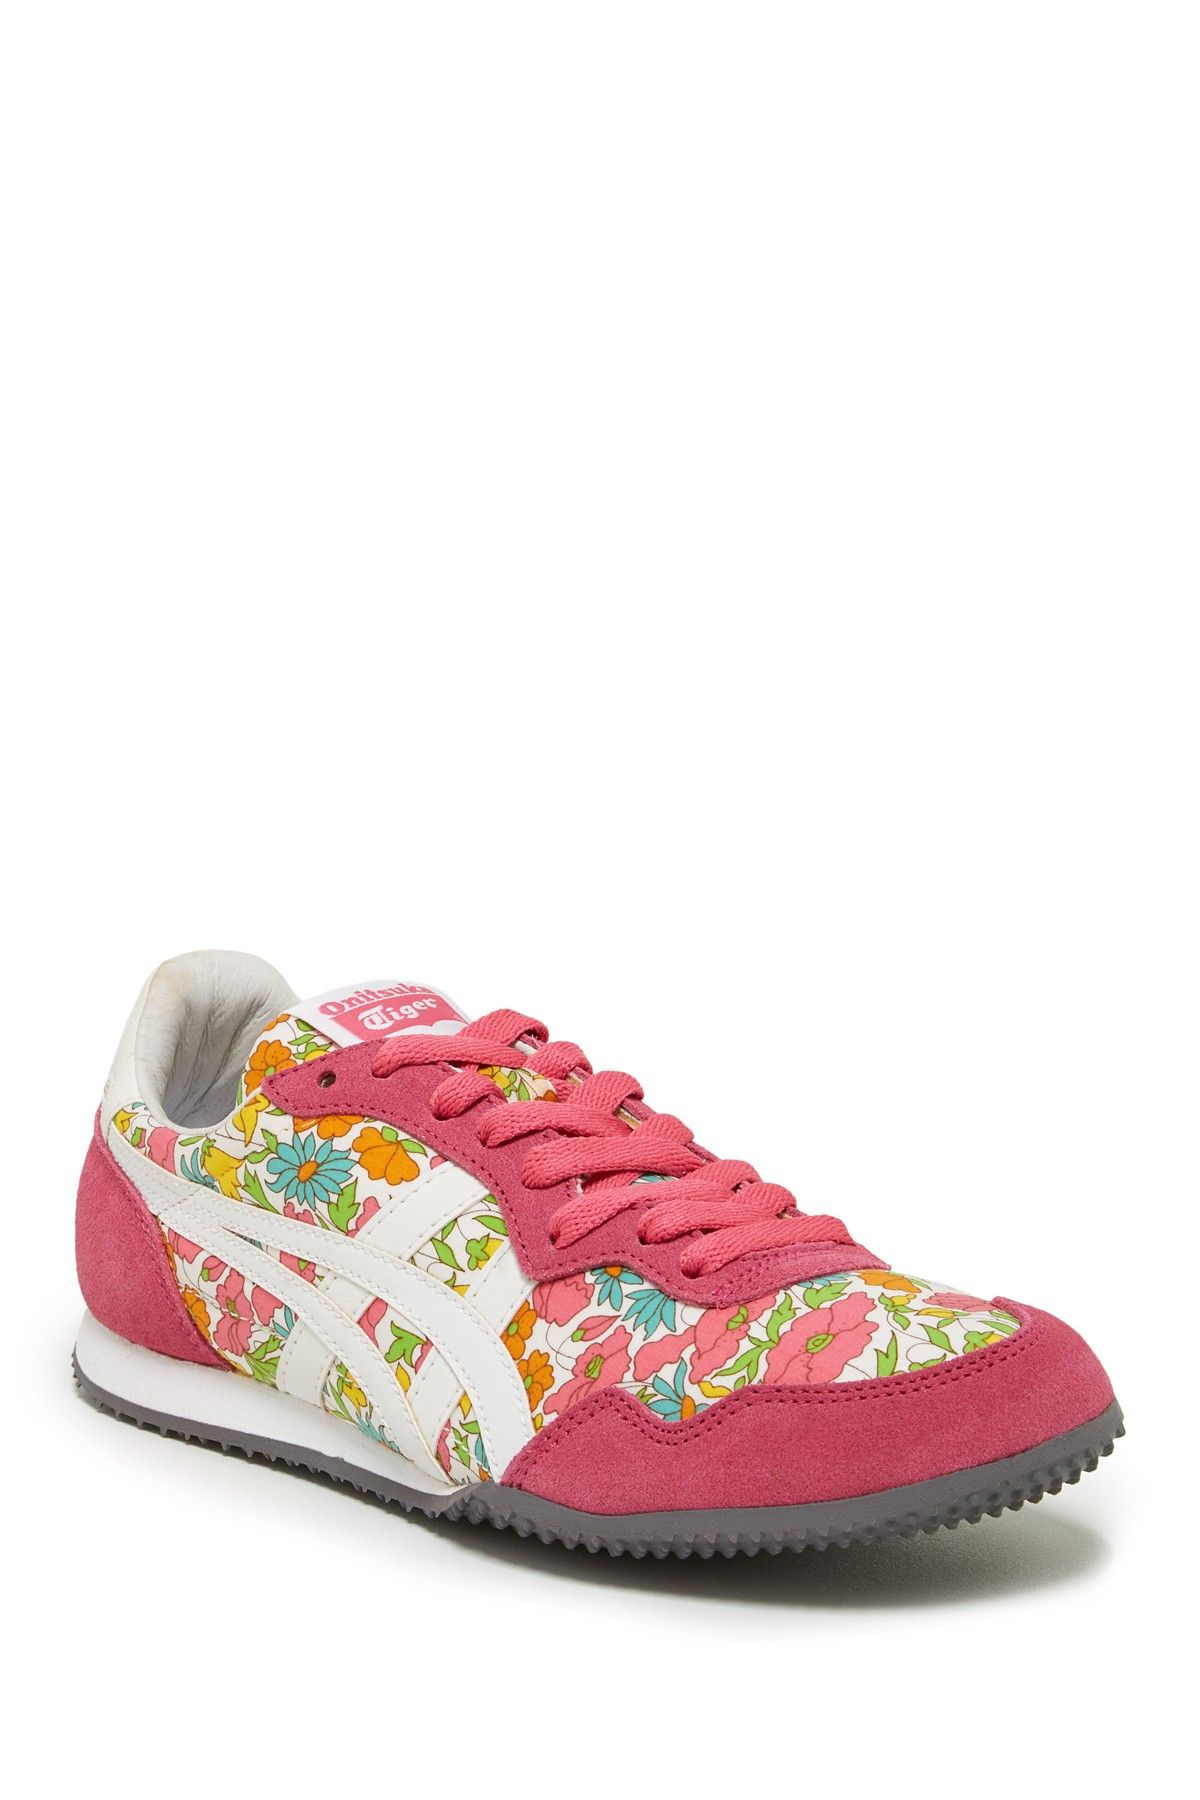 asics floral running shoes - 53% OFF